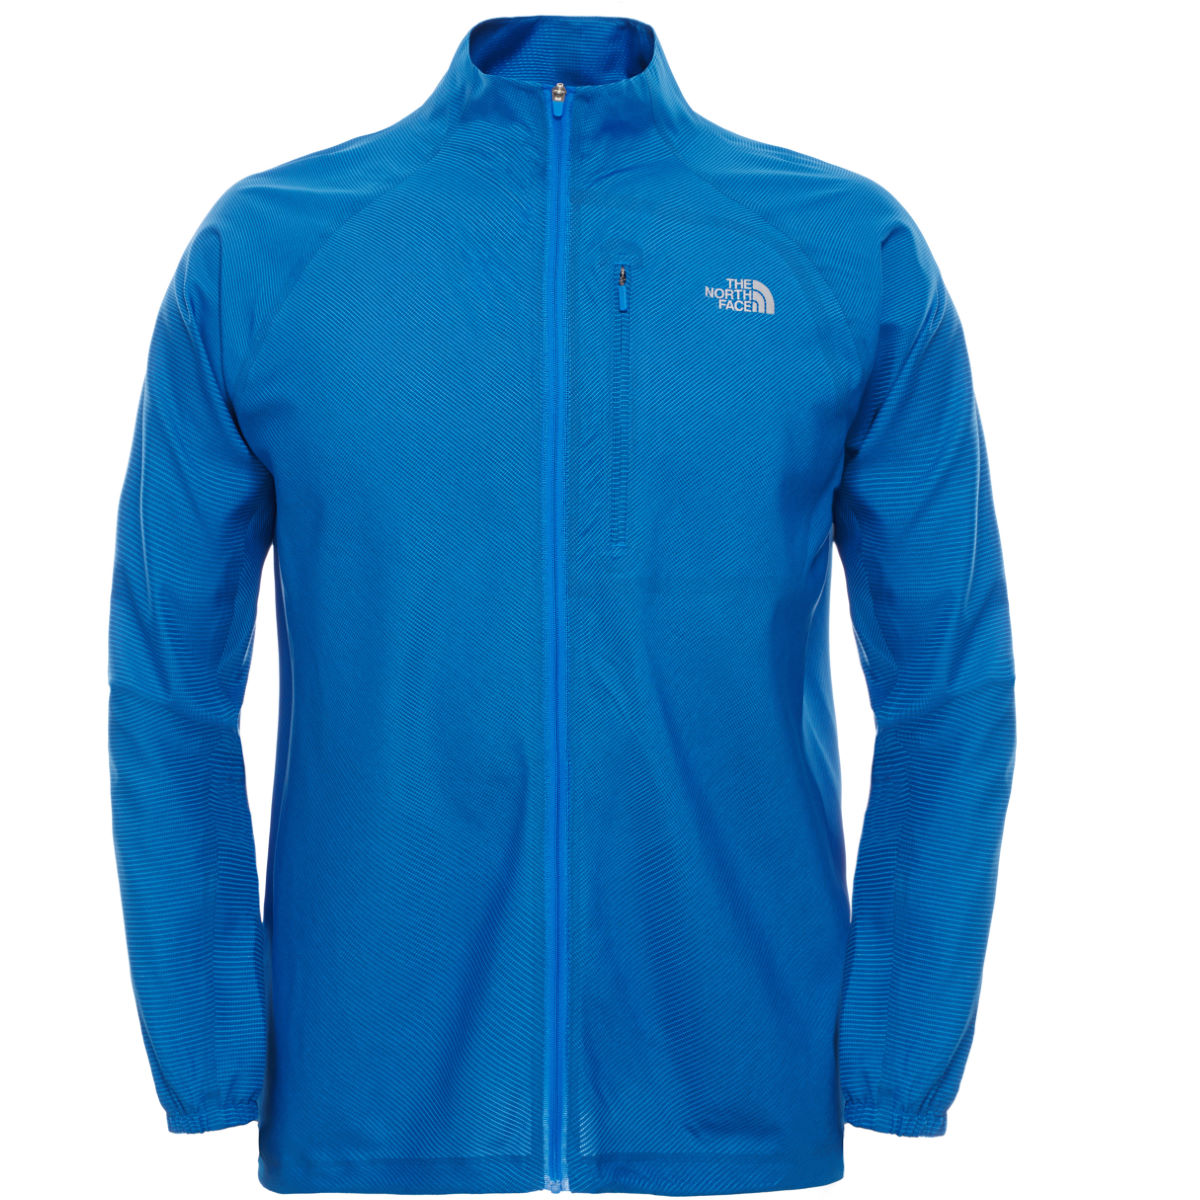 Veste The North Face Flight Series Vent - S Bomber Blue